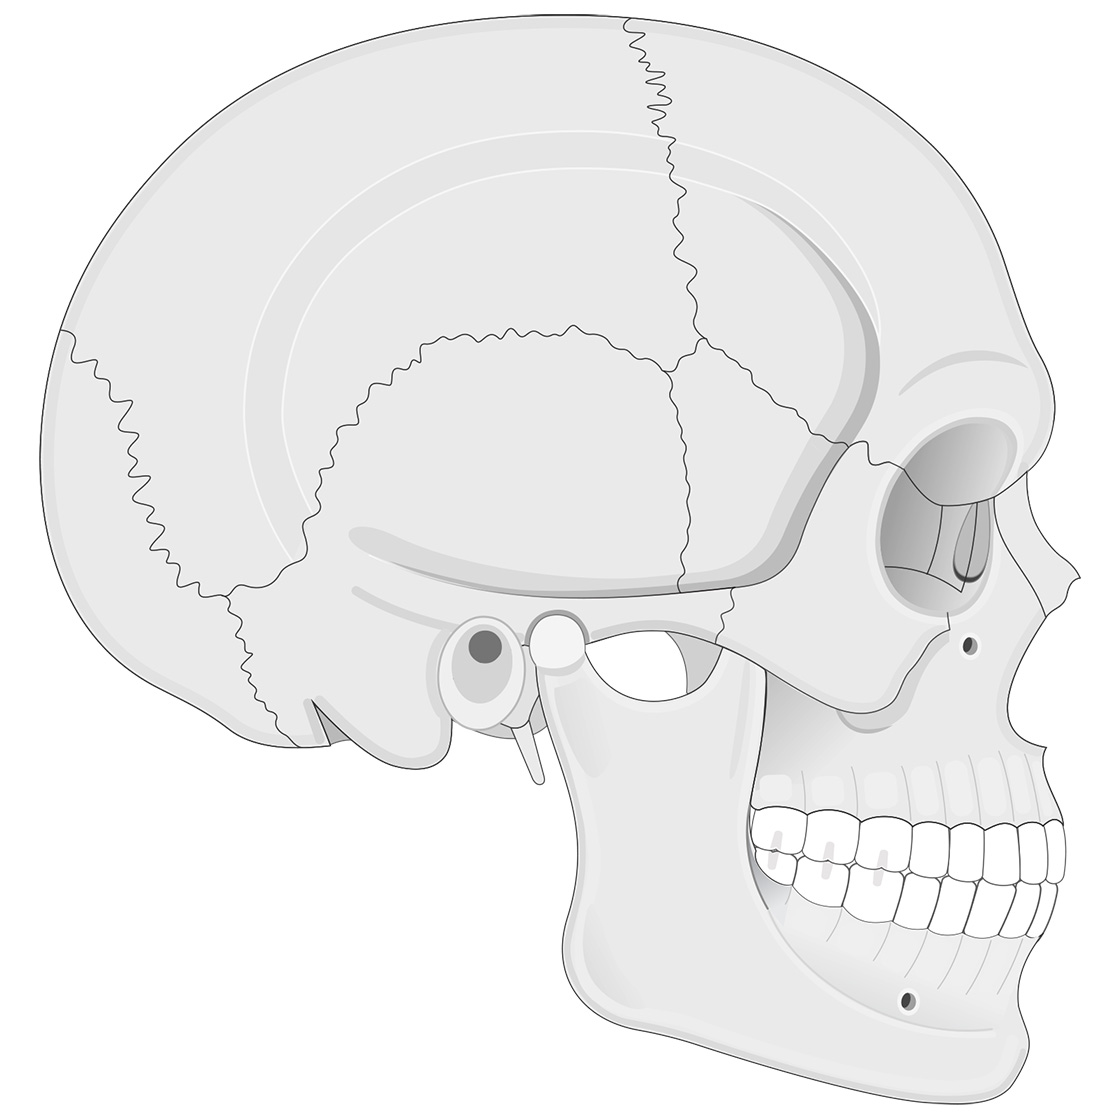 Lateral view of human skull (bone color)